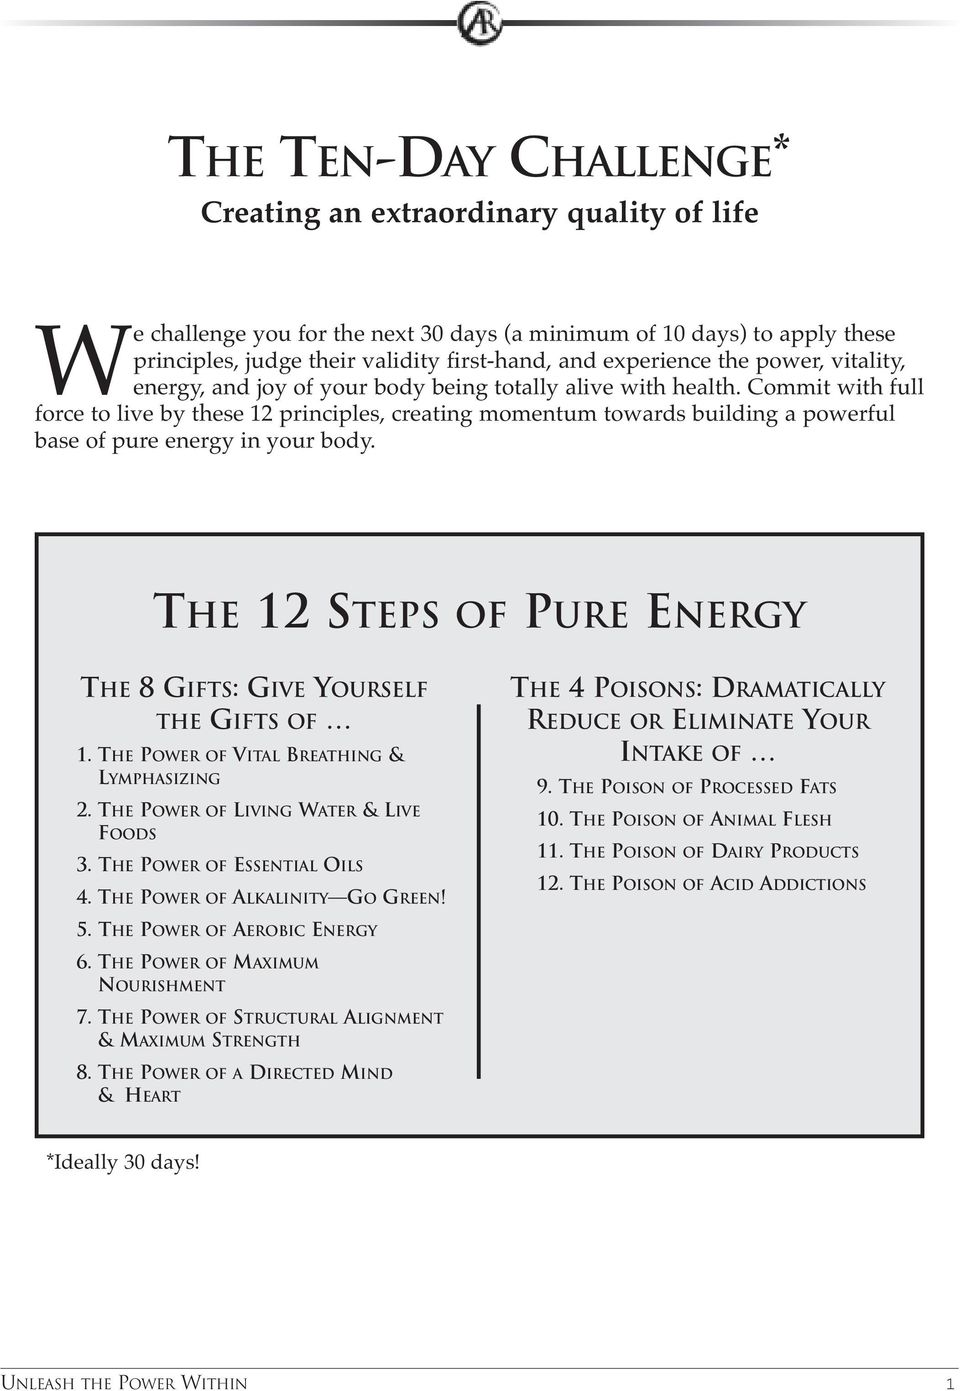 Commit with full force to live by these 12 principles, creating momentum towards building a powerful base of pure energy in your body.